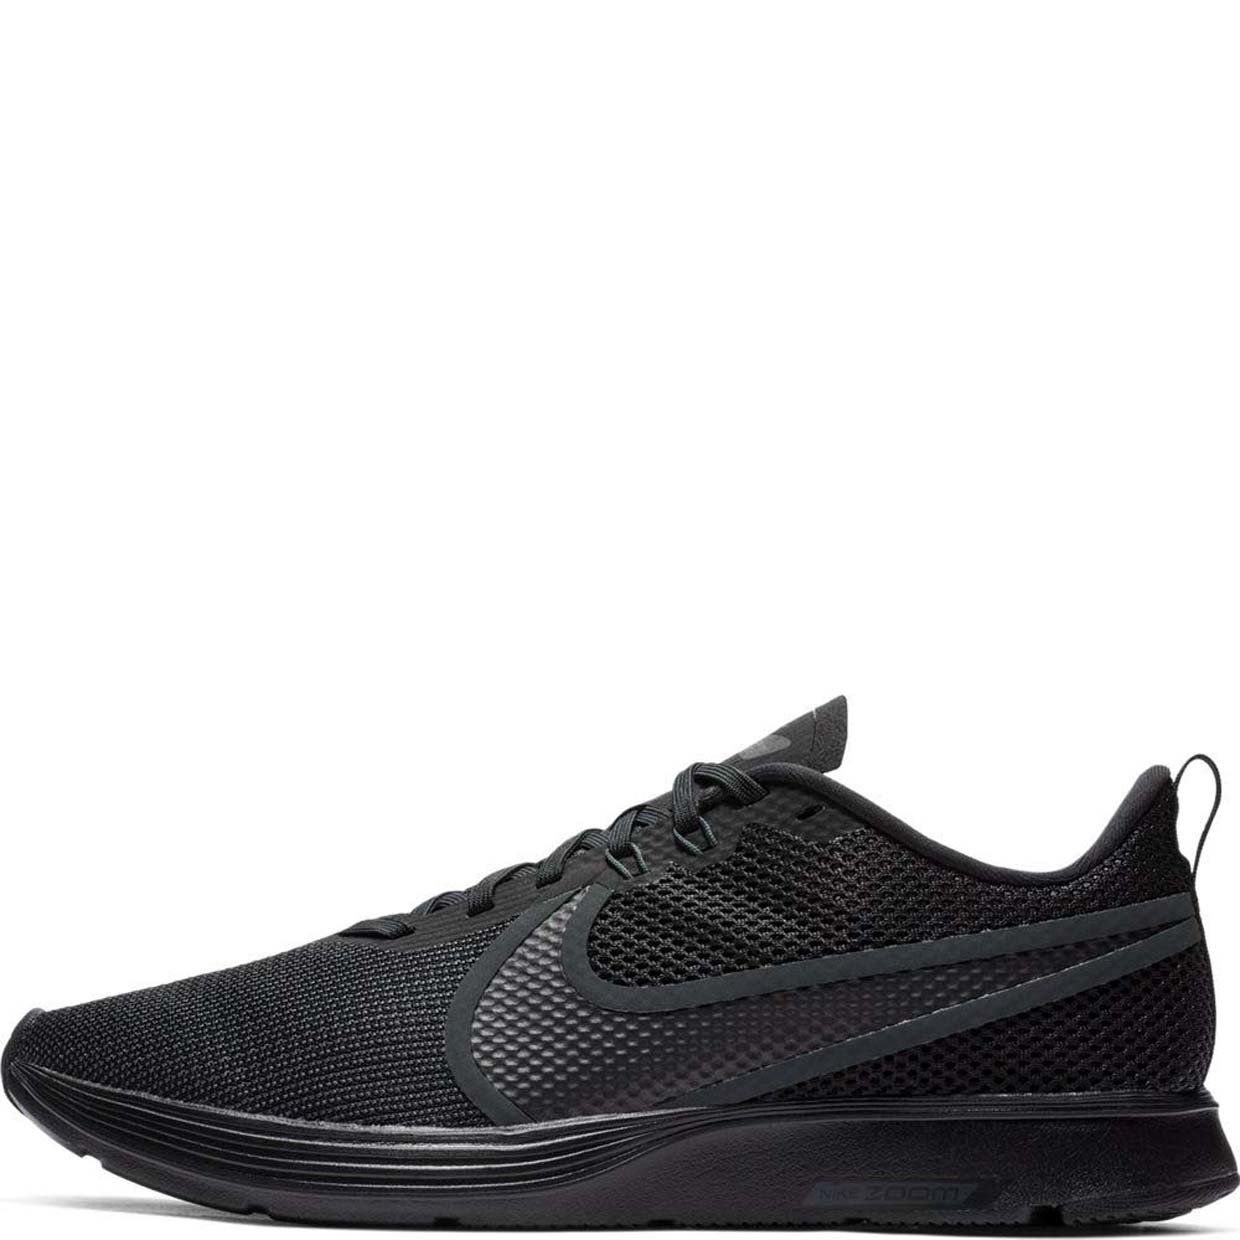 Кроссовки Nike Zoom Strike 2. Фото N2